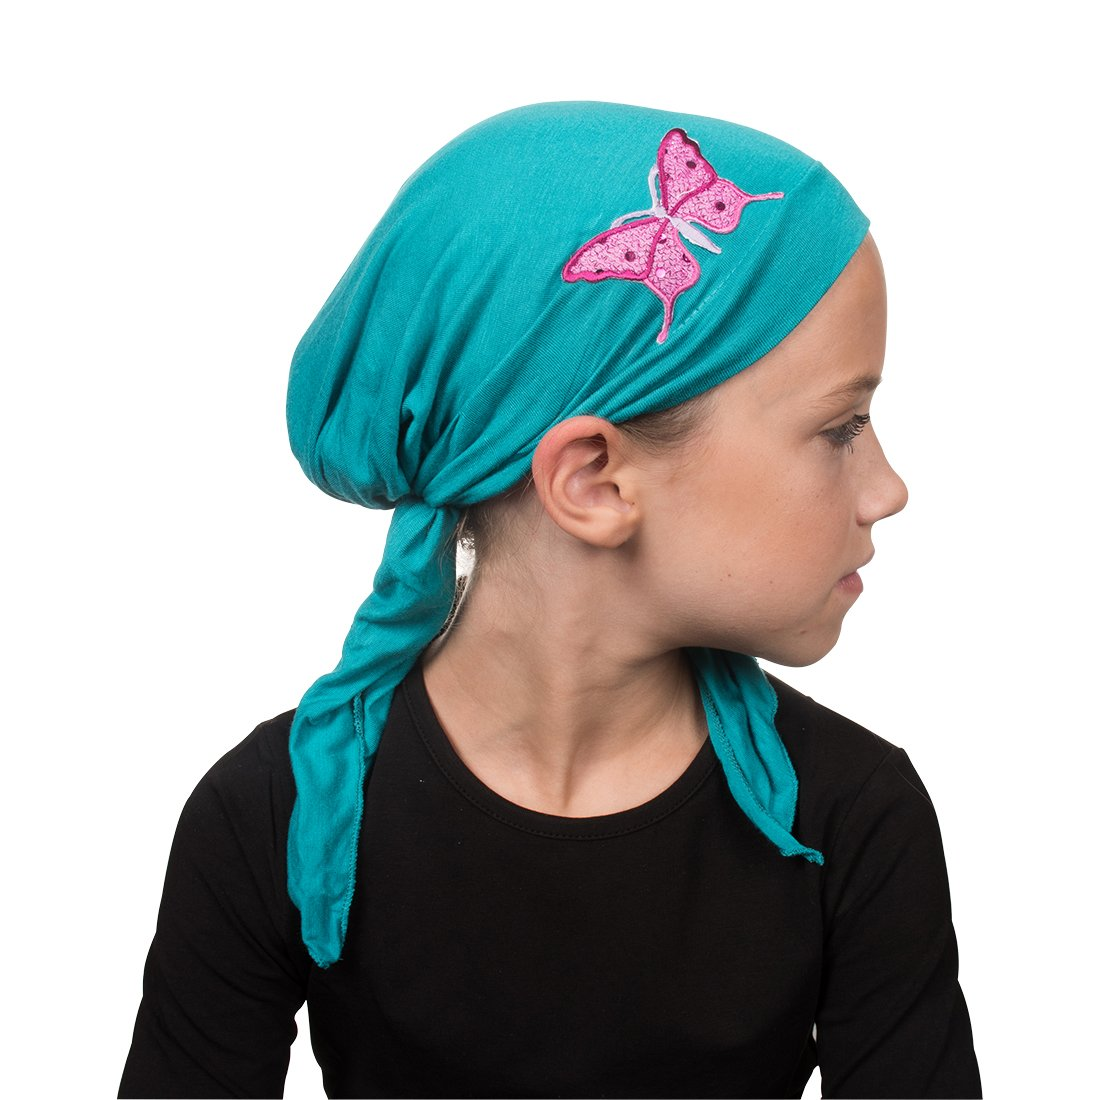 Sequin Butterfly Child's Pretied Head Scarf Cancer Cap - Turquoise by Landana Headscarves